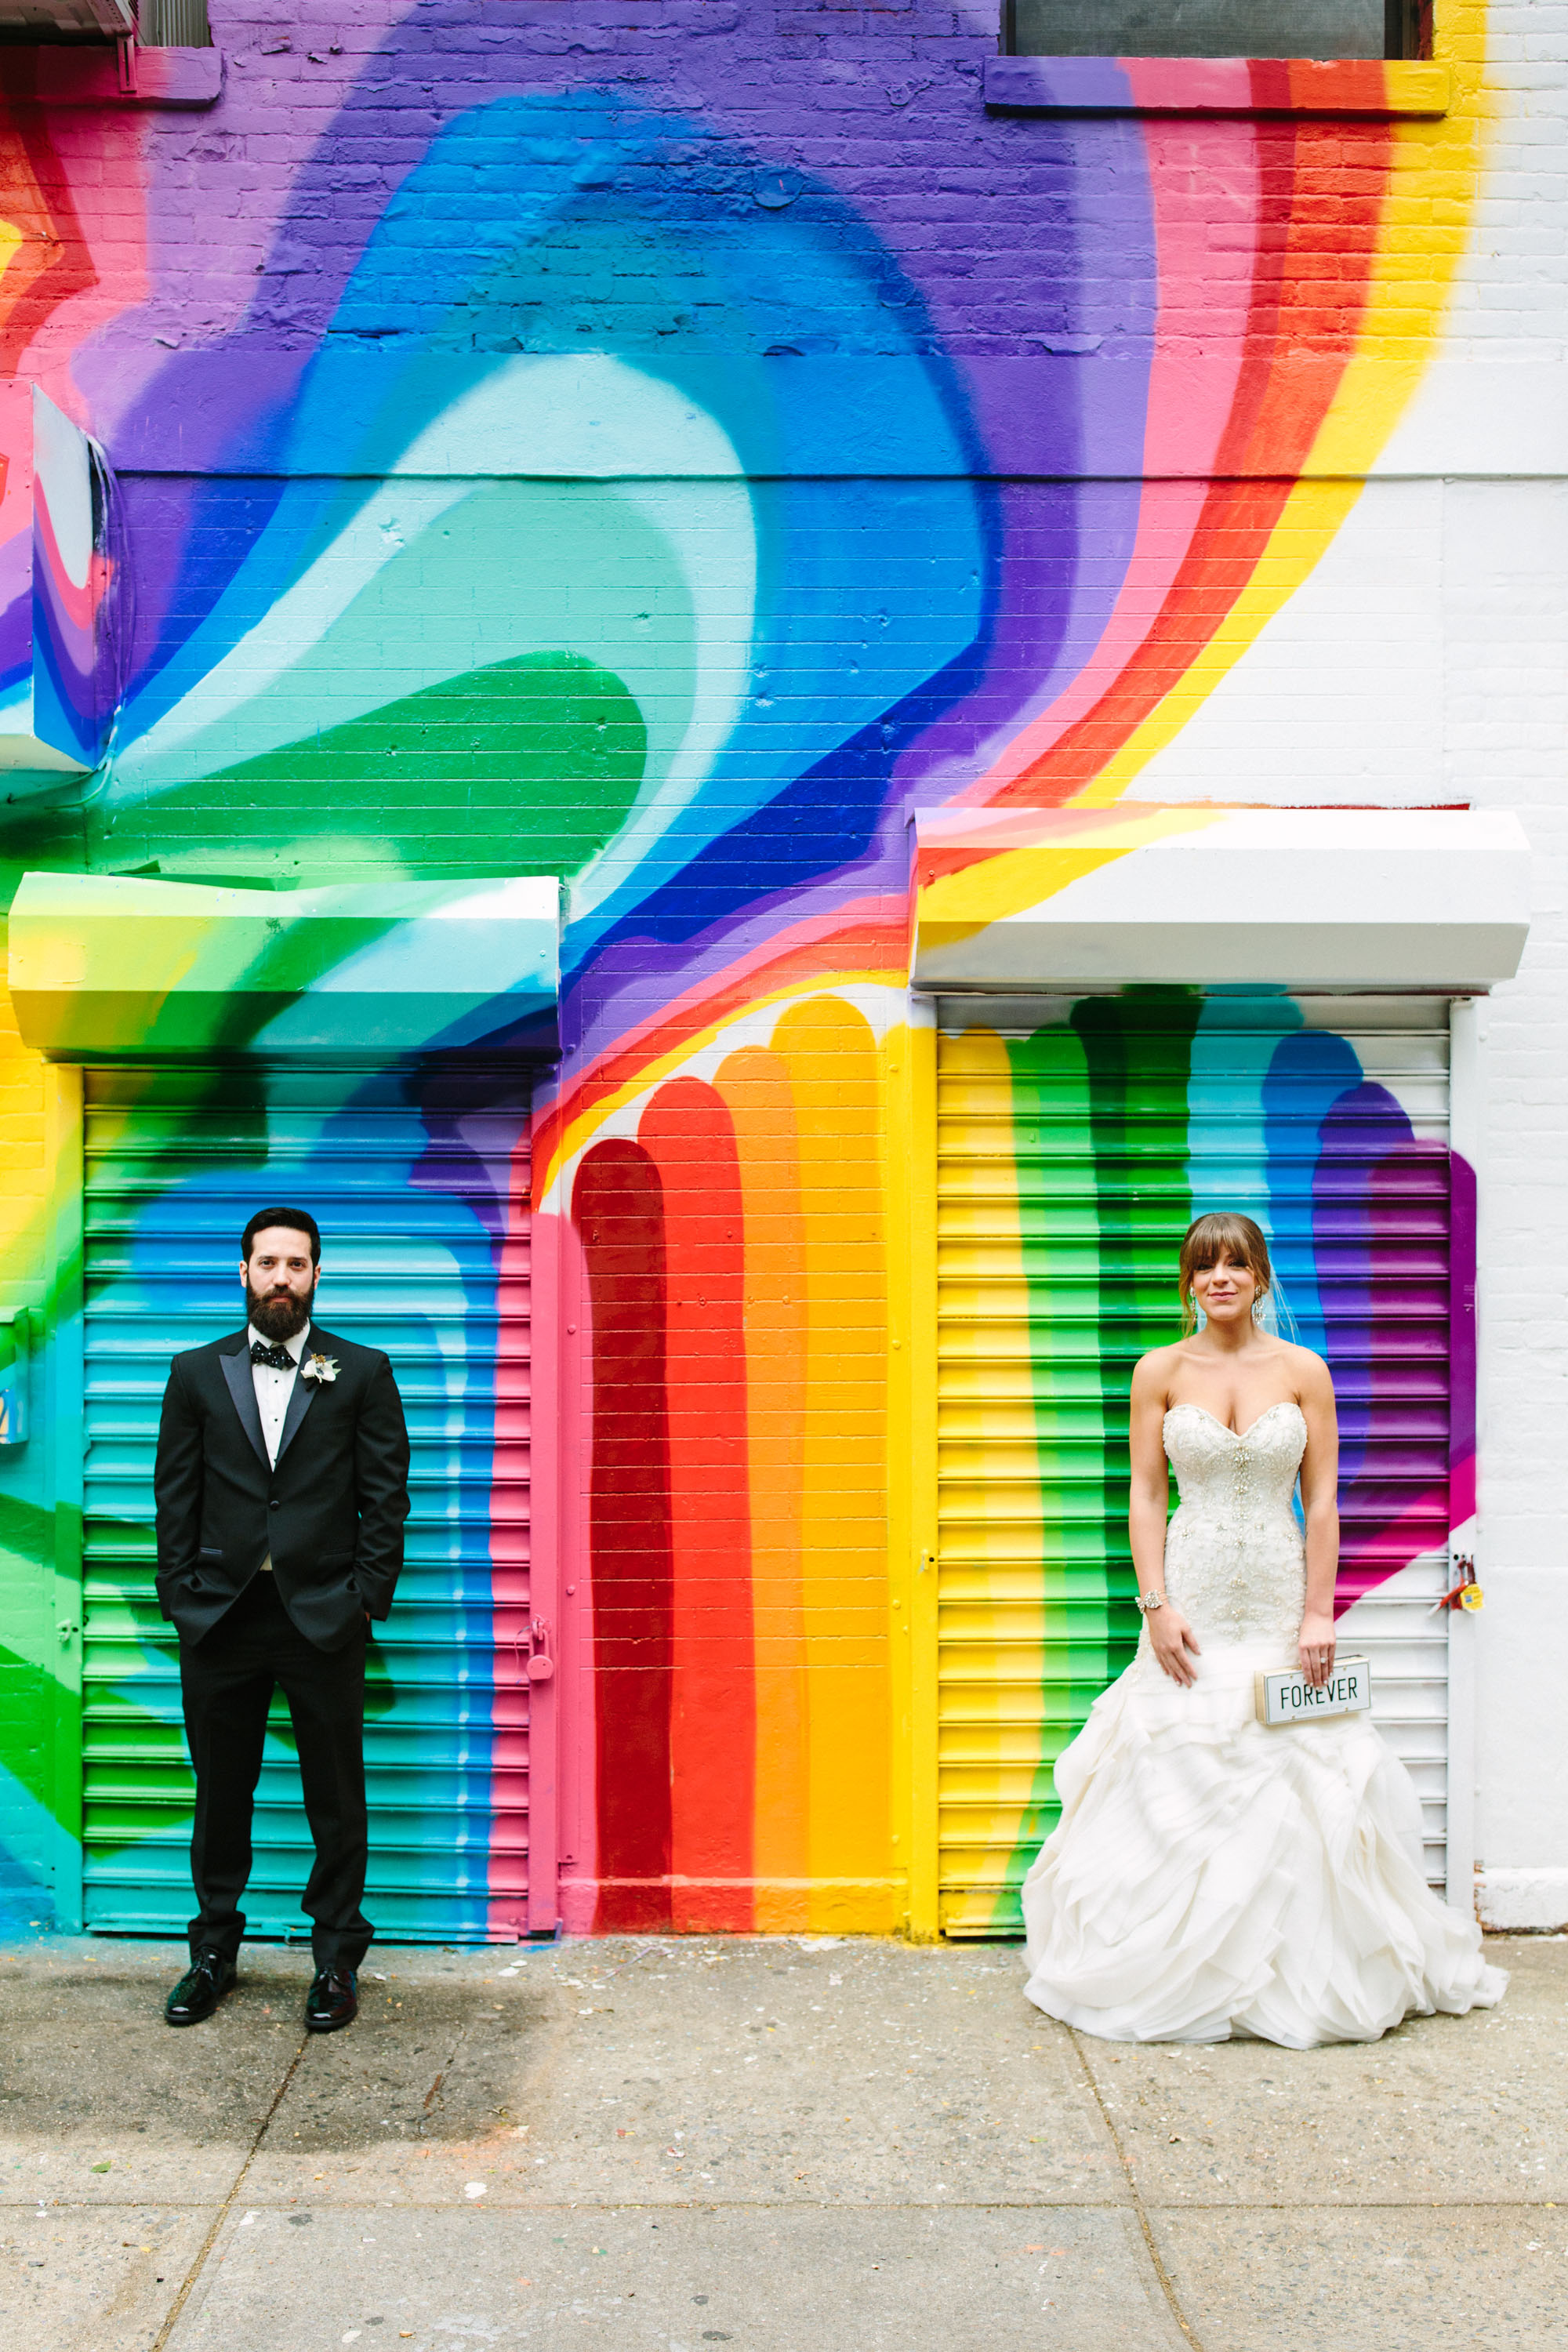 Kat & Rizz's Wedding at The Foundry NYC